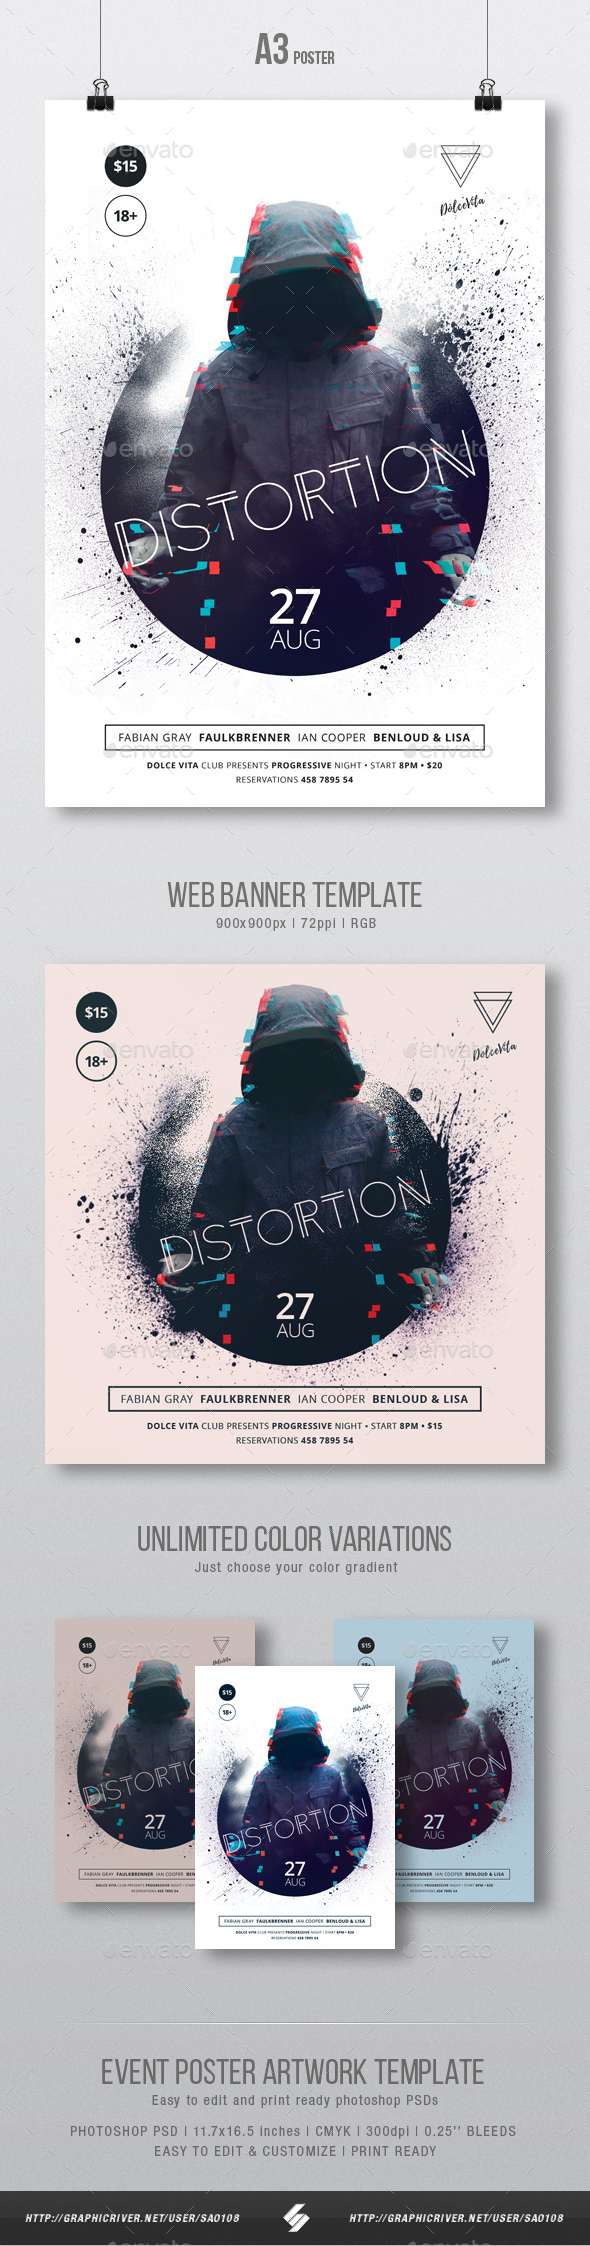 Distortion - Underground Party Flyer / Poster Template A3 by Sao108